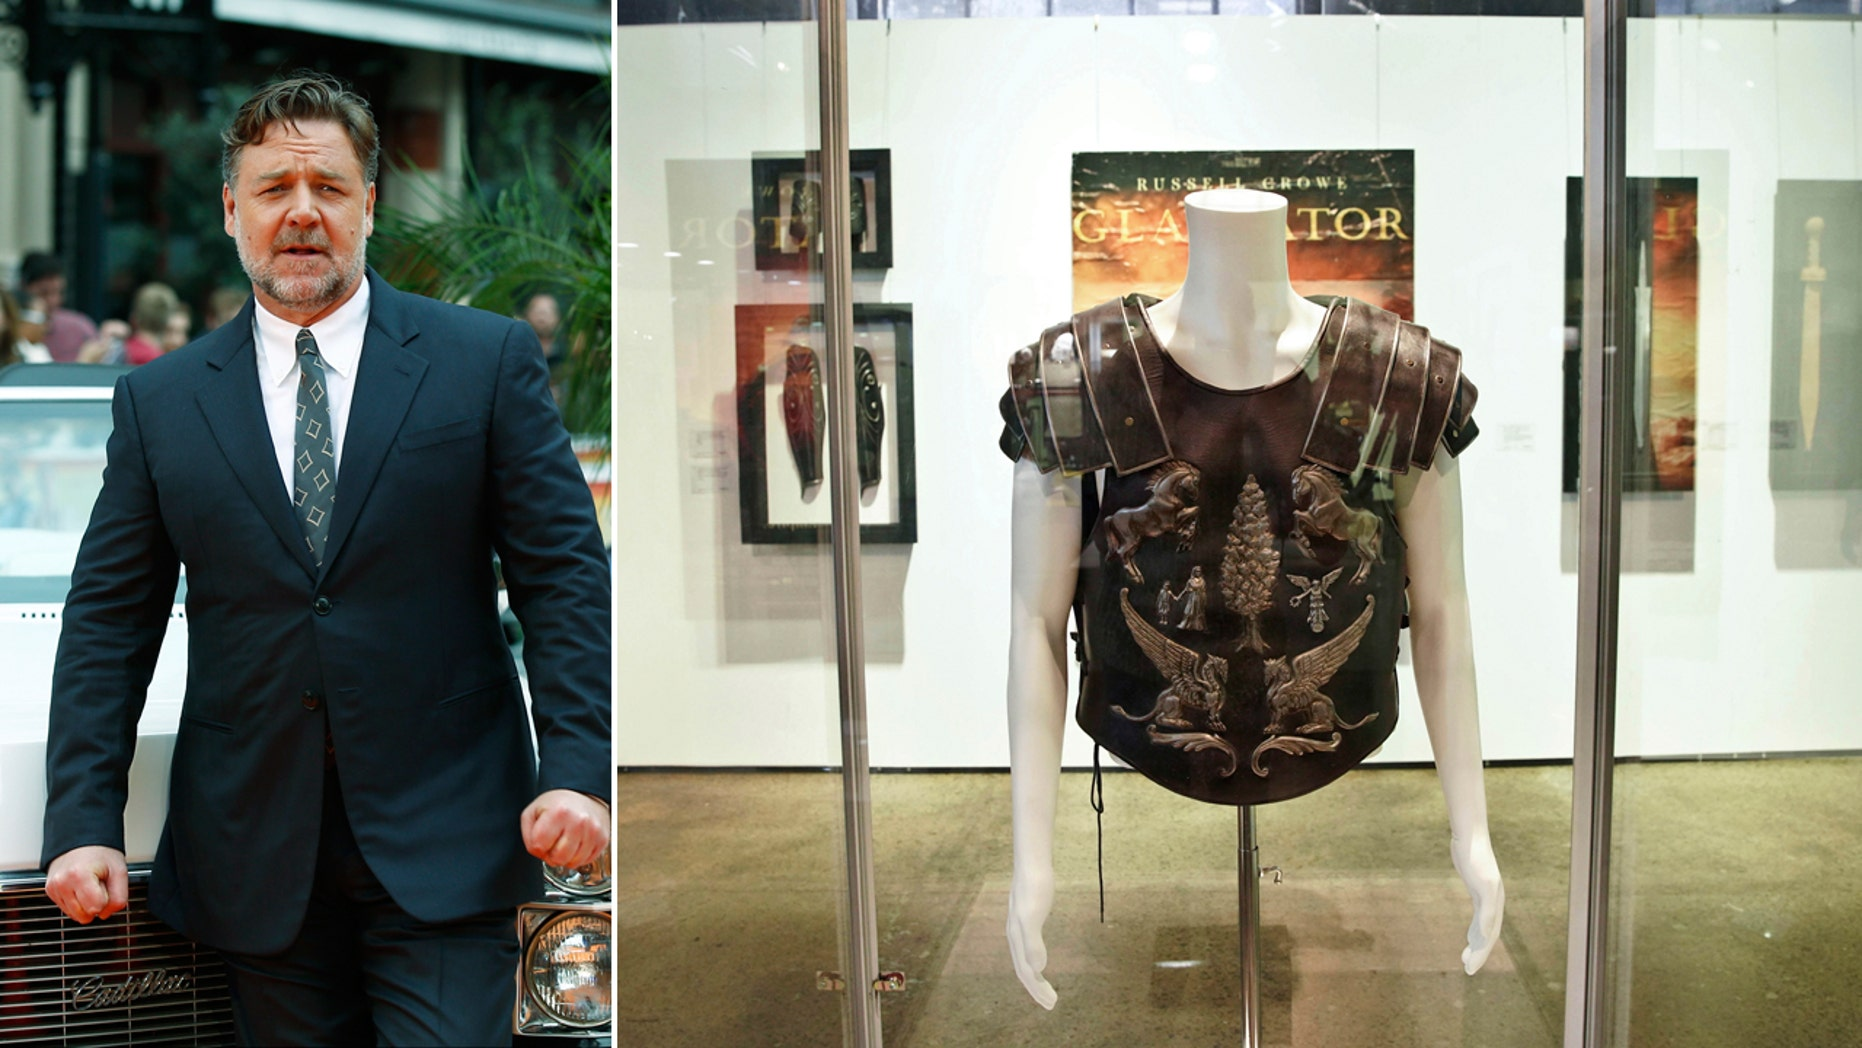 One of the costumes (right) from the film Gladiator owned by actor Russell Crowe (left) on display for the 'Russell Crowe: The Art of Divorce Auction' at Carriageworks, Sydney, Australia, on Saturday.